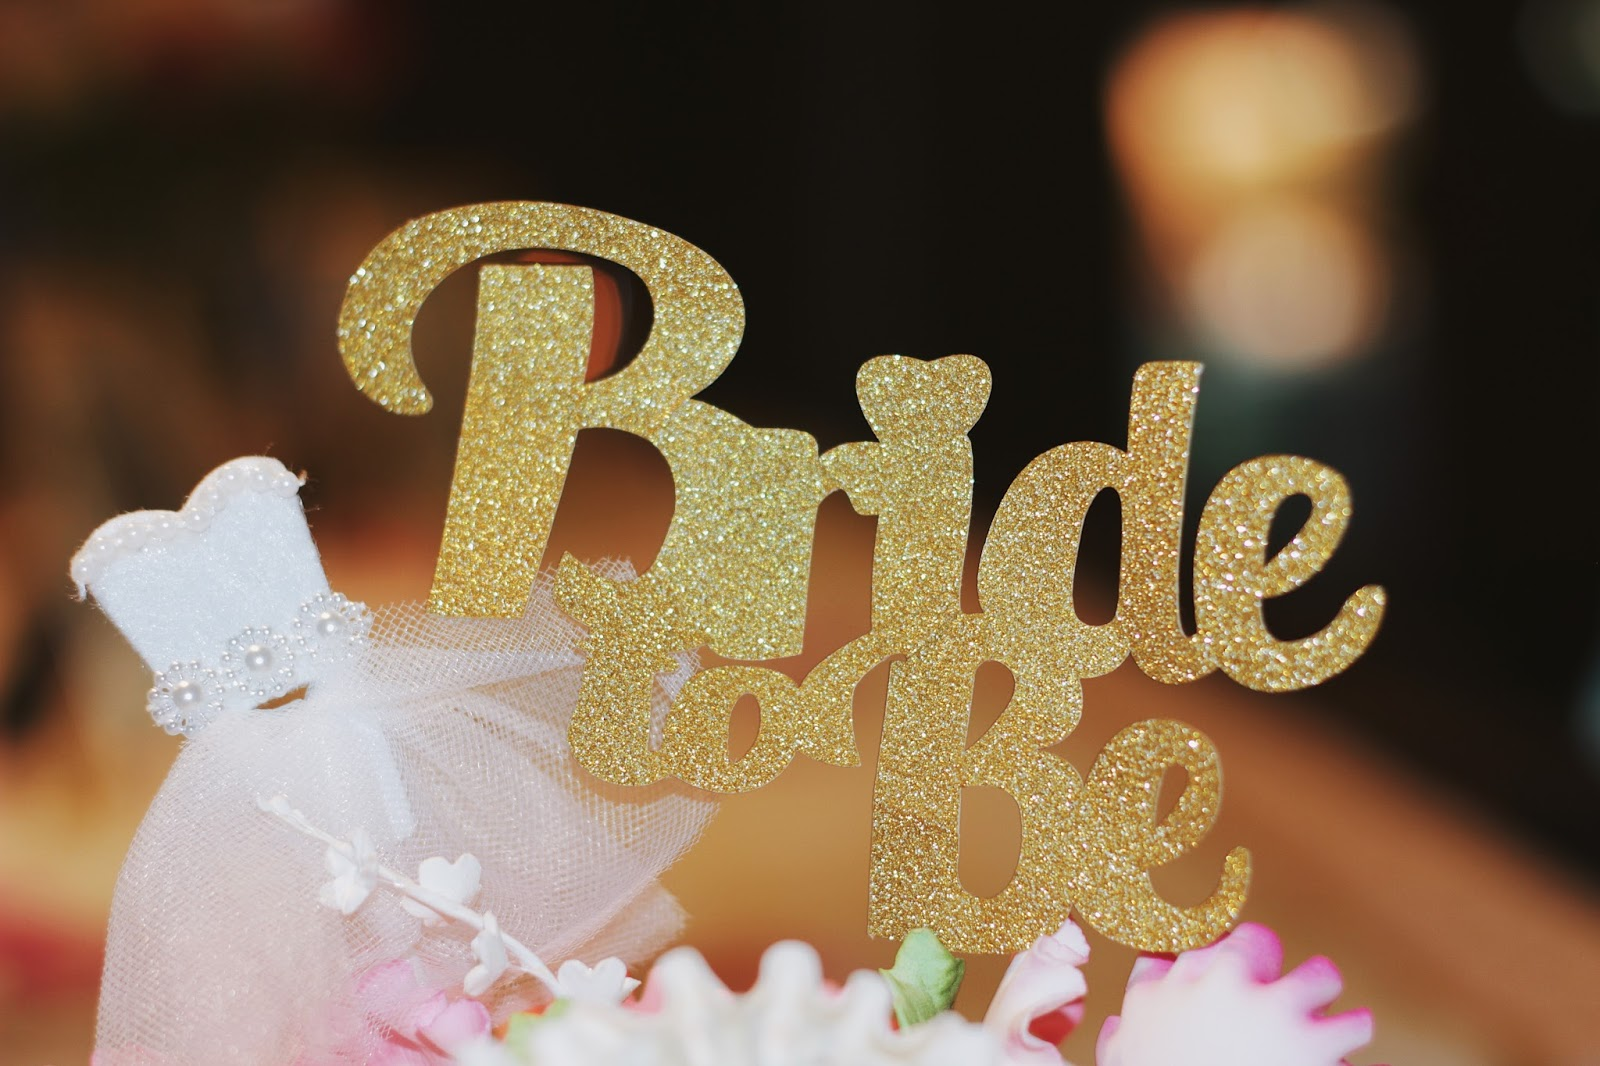 MY FIRST BRIDAL SHOWER EXPERIENCE